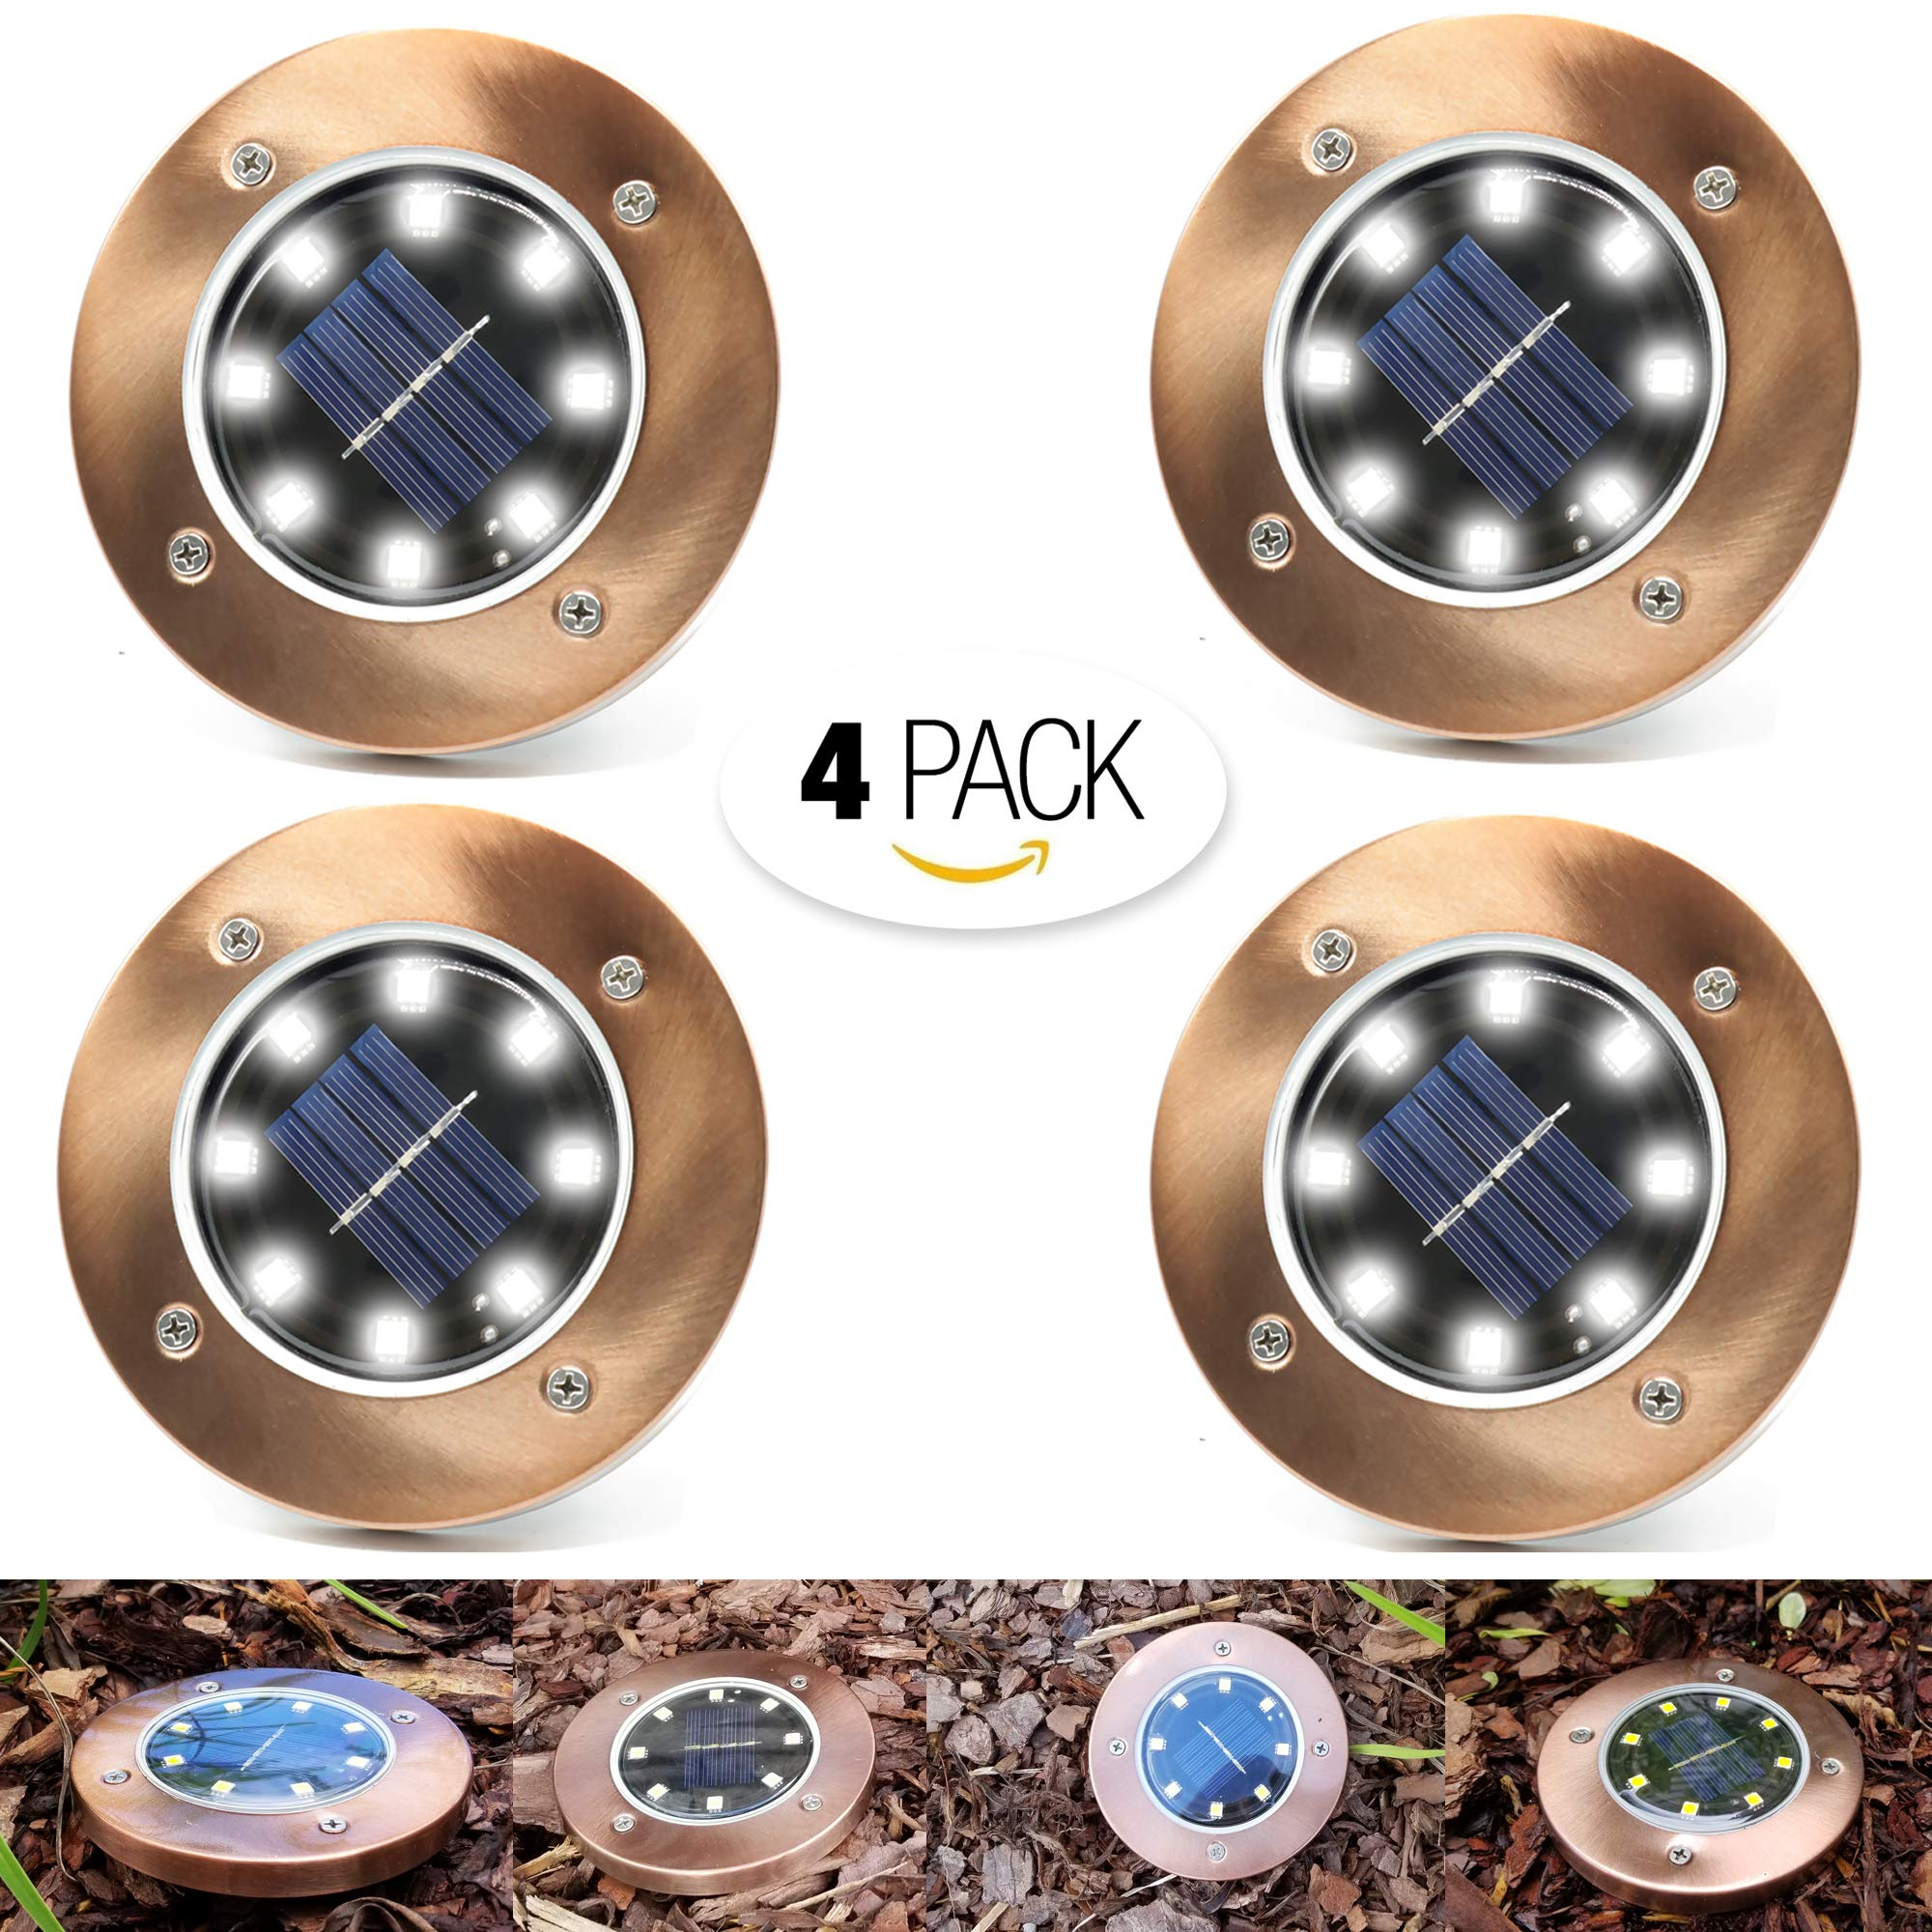 s'AllGood 4 Pack Solar 8 LED Ground Lights Outdoor Disk Lights for Garden Driveways Patio Deck Pathway Waterproof (Copper/Bronze Finish) (Bright White LED)